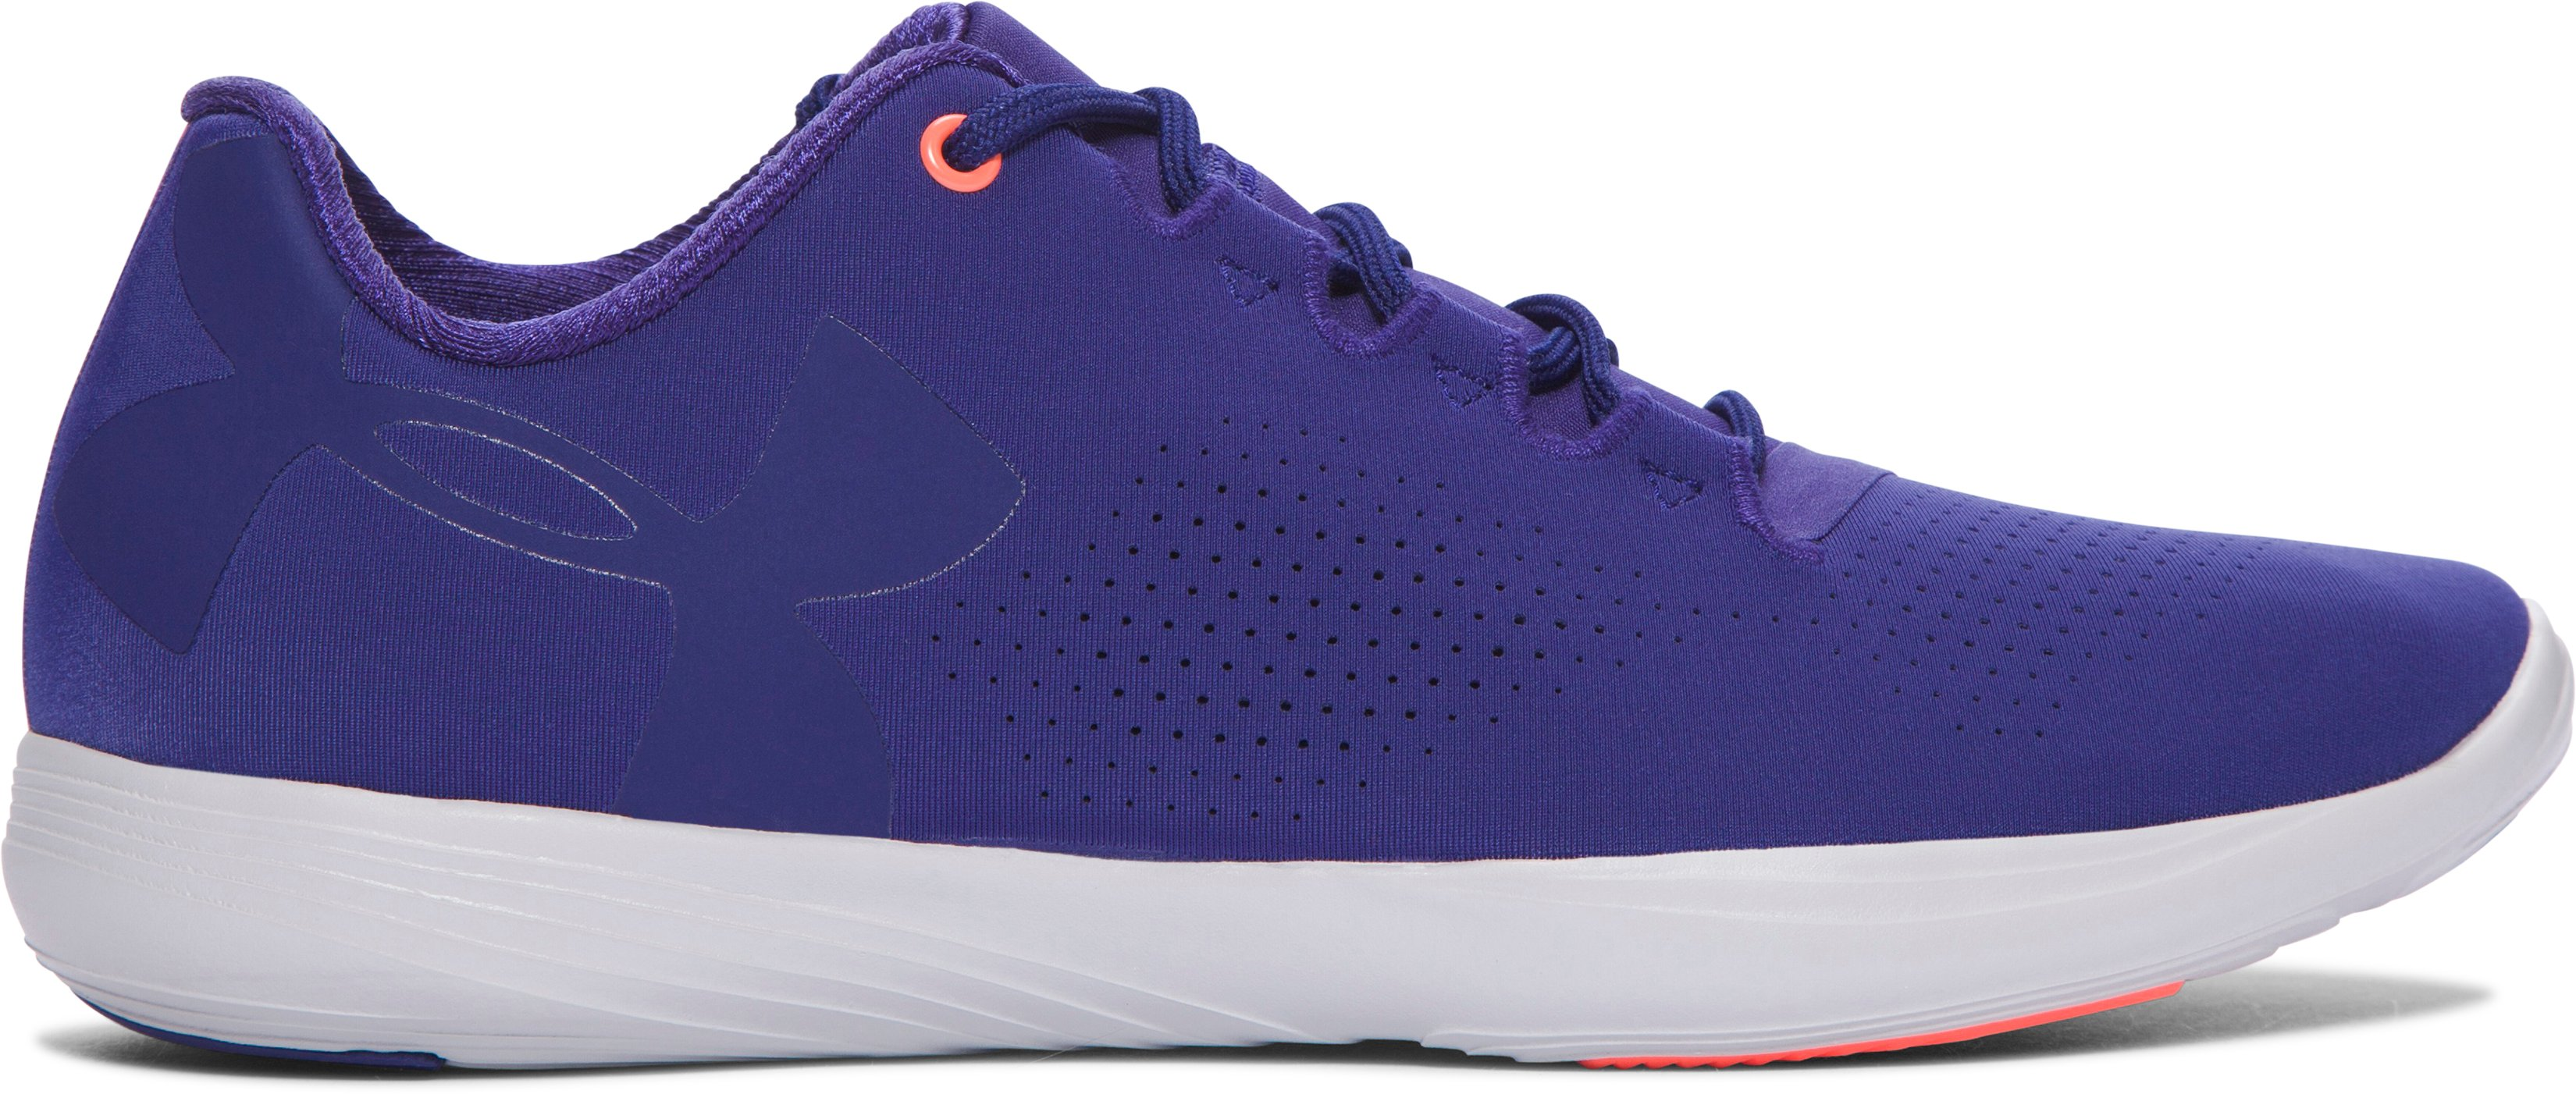 Women's UA Street Precision Low Training Shoes, EUROPA PURPLE,